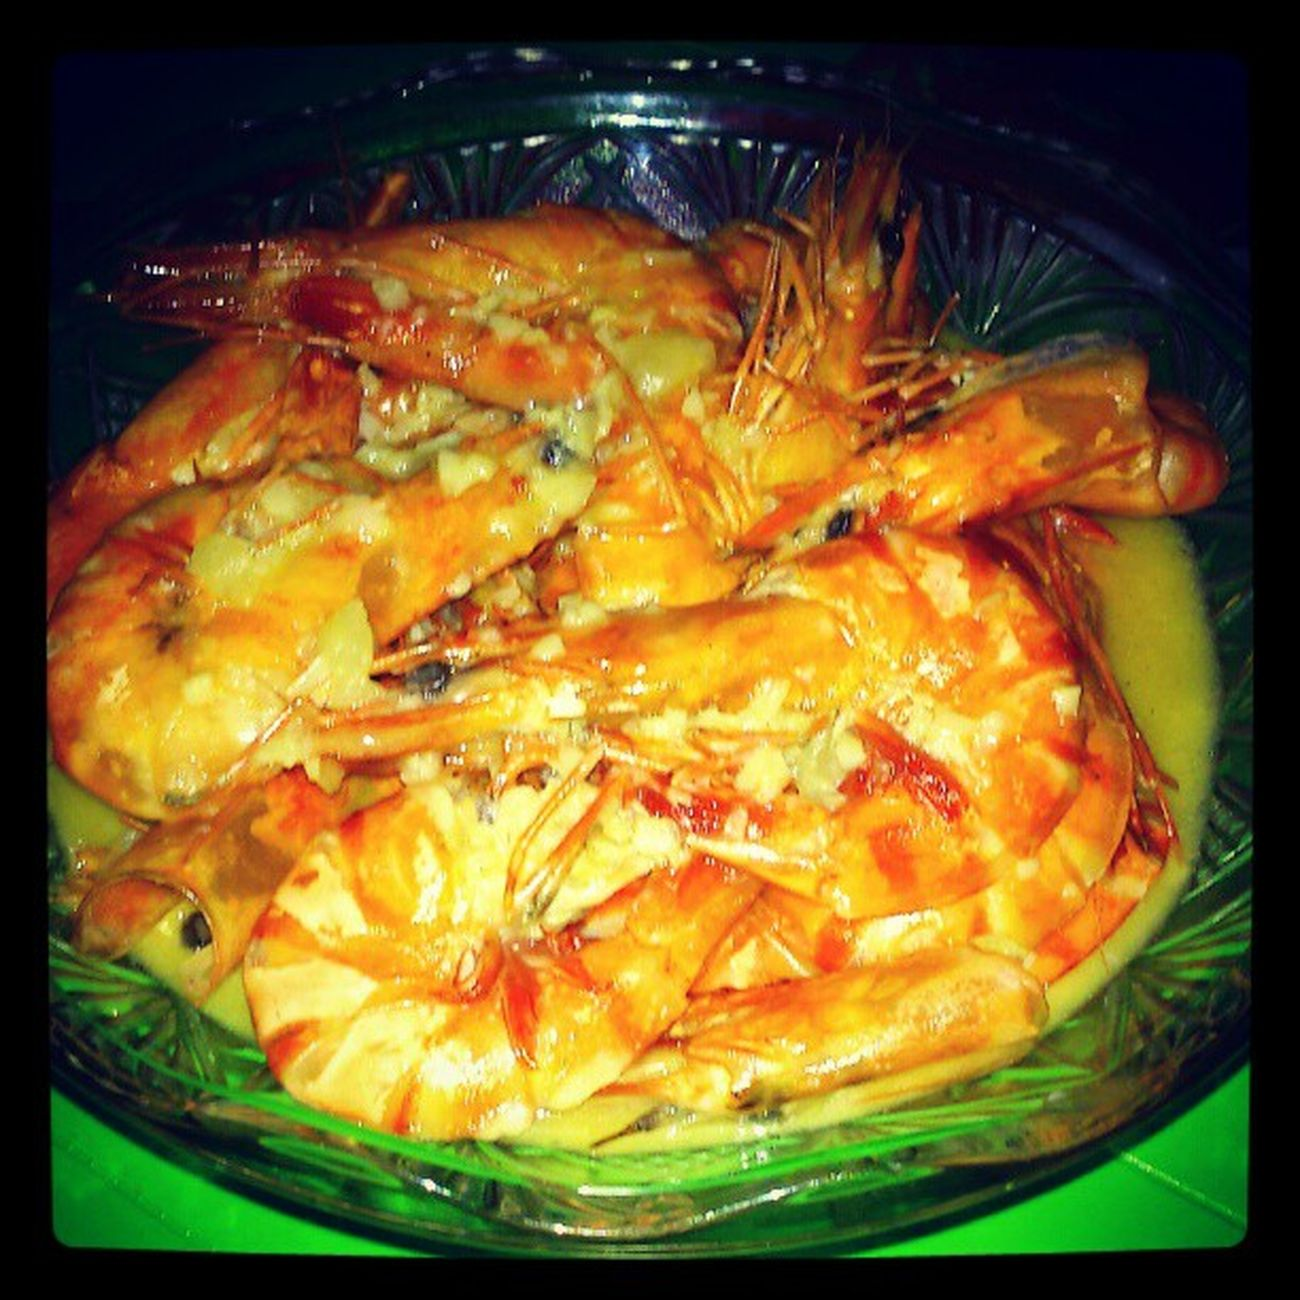 My very own version of famous buttered shrimp of Dampa Butteredshrimp Cooking Dampa Nomnom